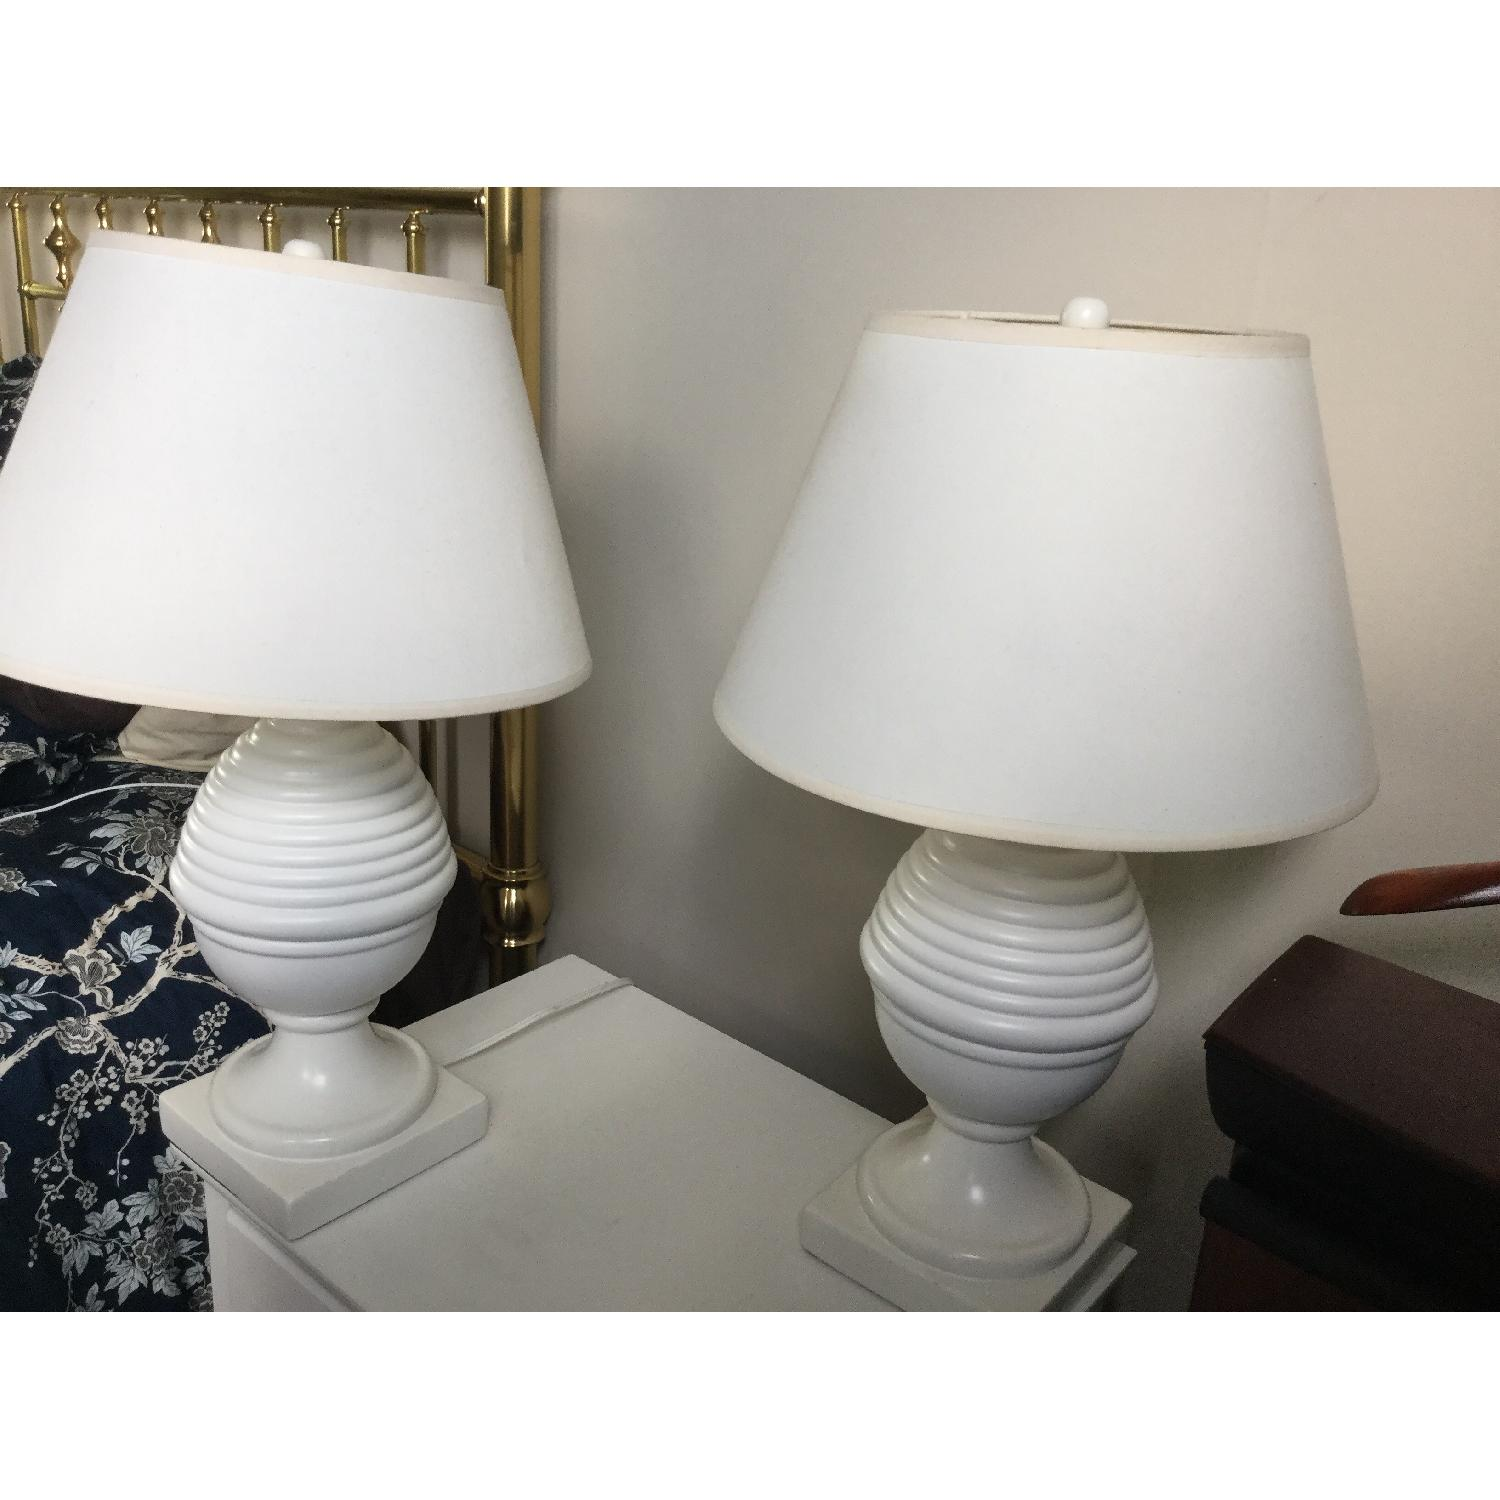 Matching White Lamps - image-3